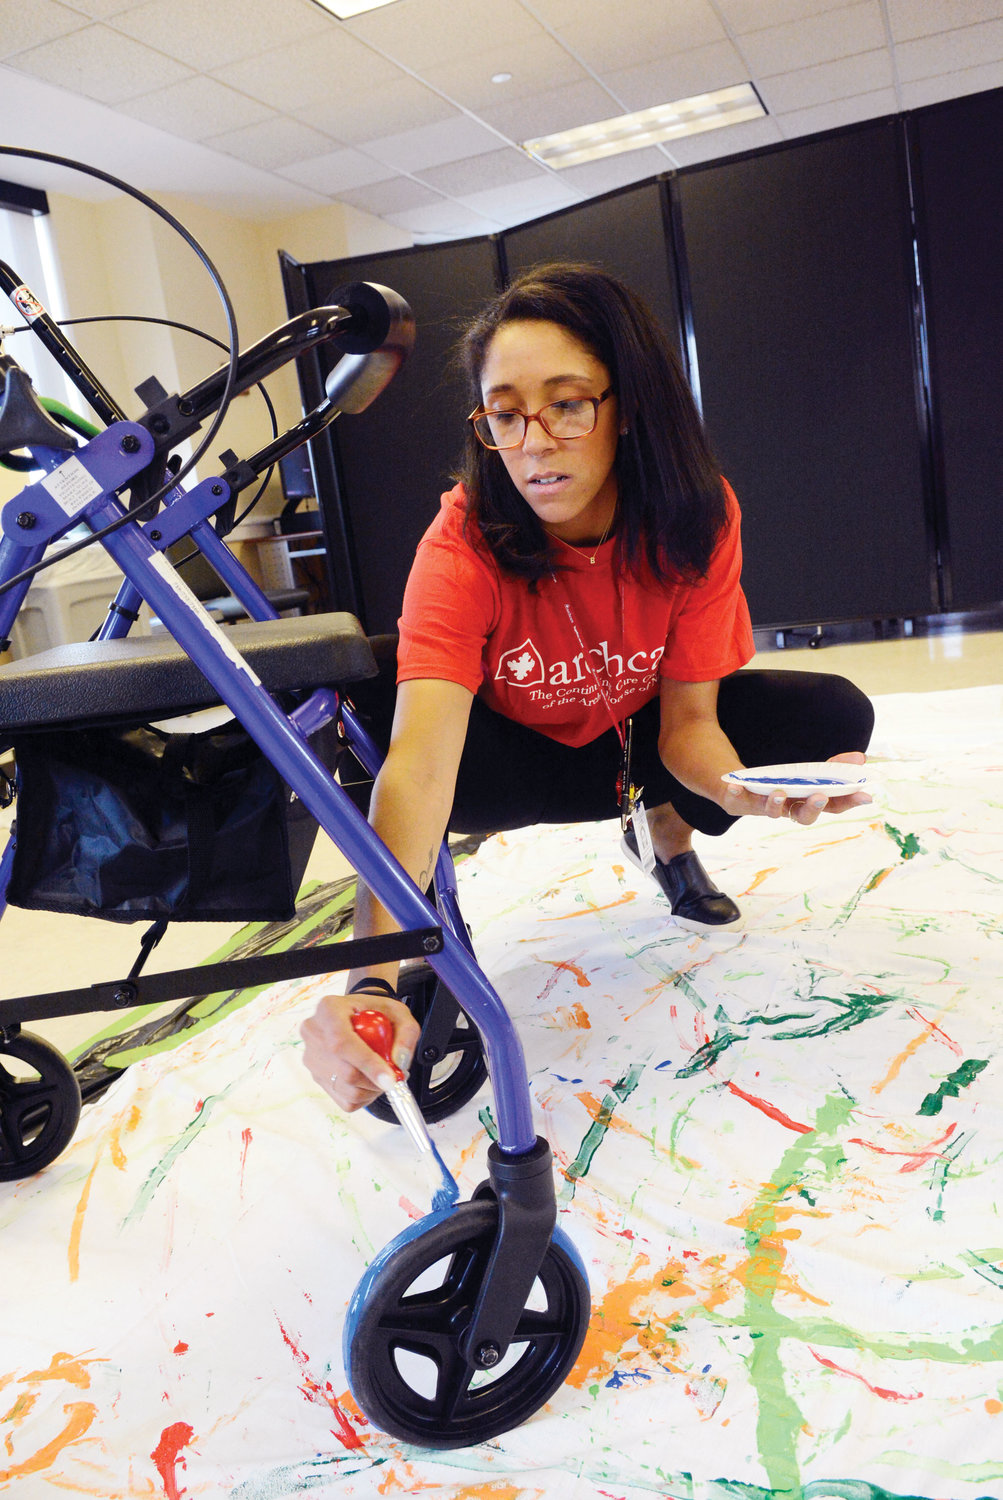 Staff, including Rebecca Love, recreational services supervisor, assisted the seniors March 25 in applying assorted colors of paint before the artists wheeled their modes of transportation across a canvas.